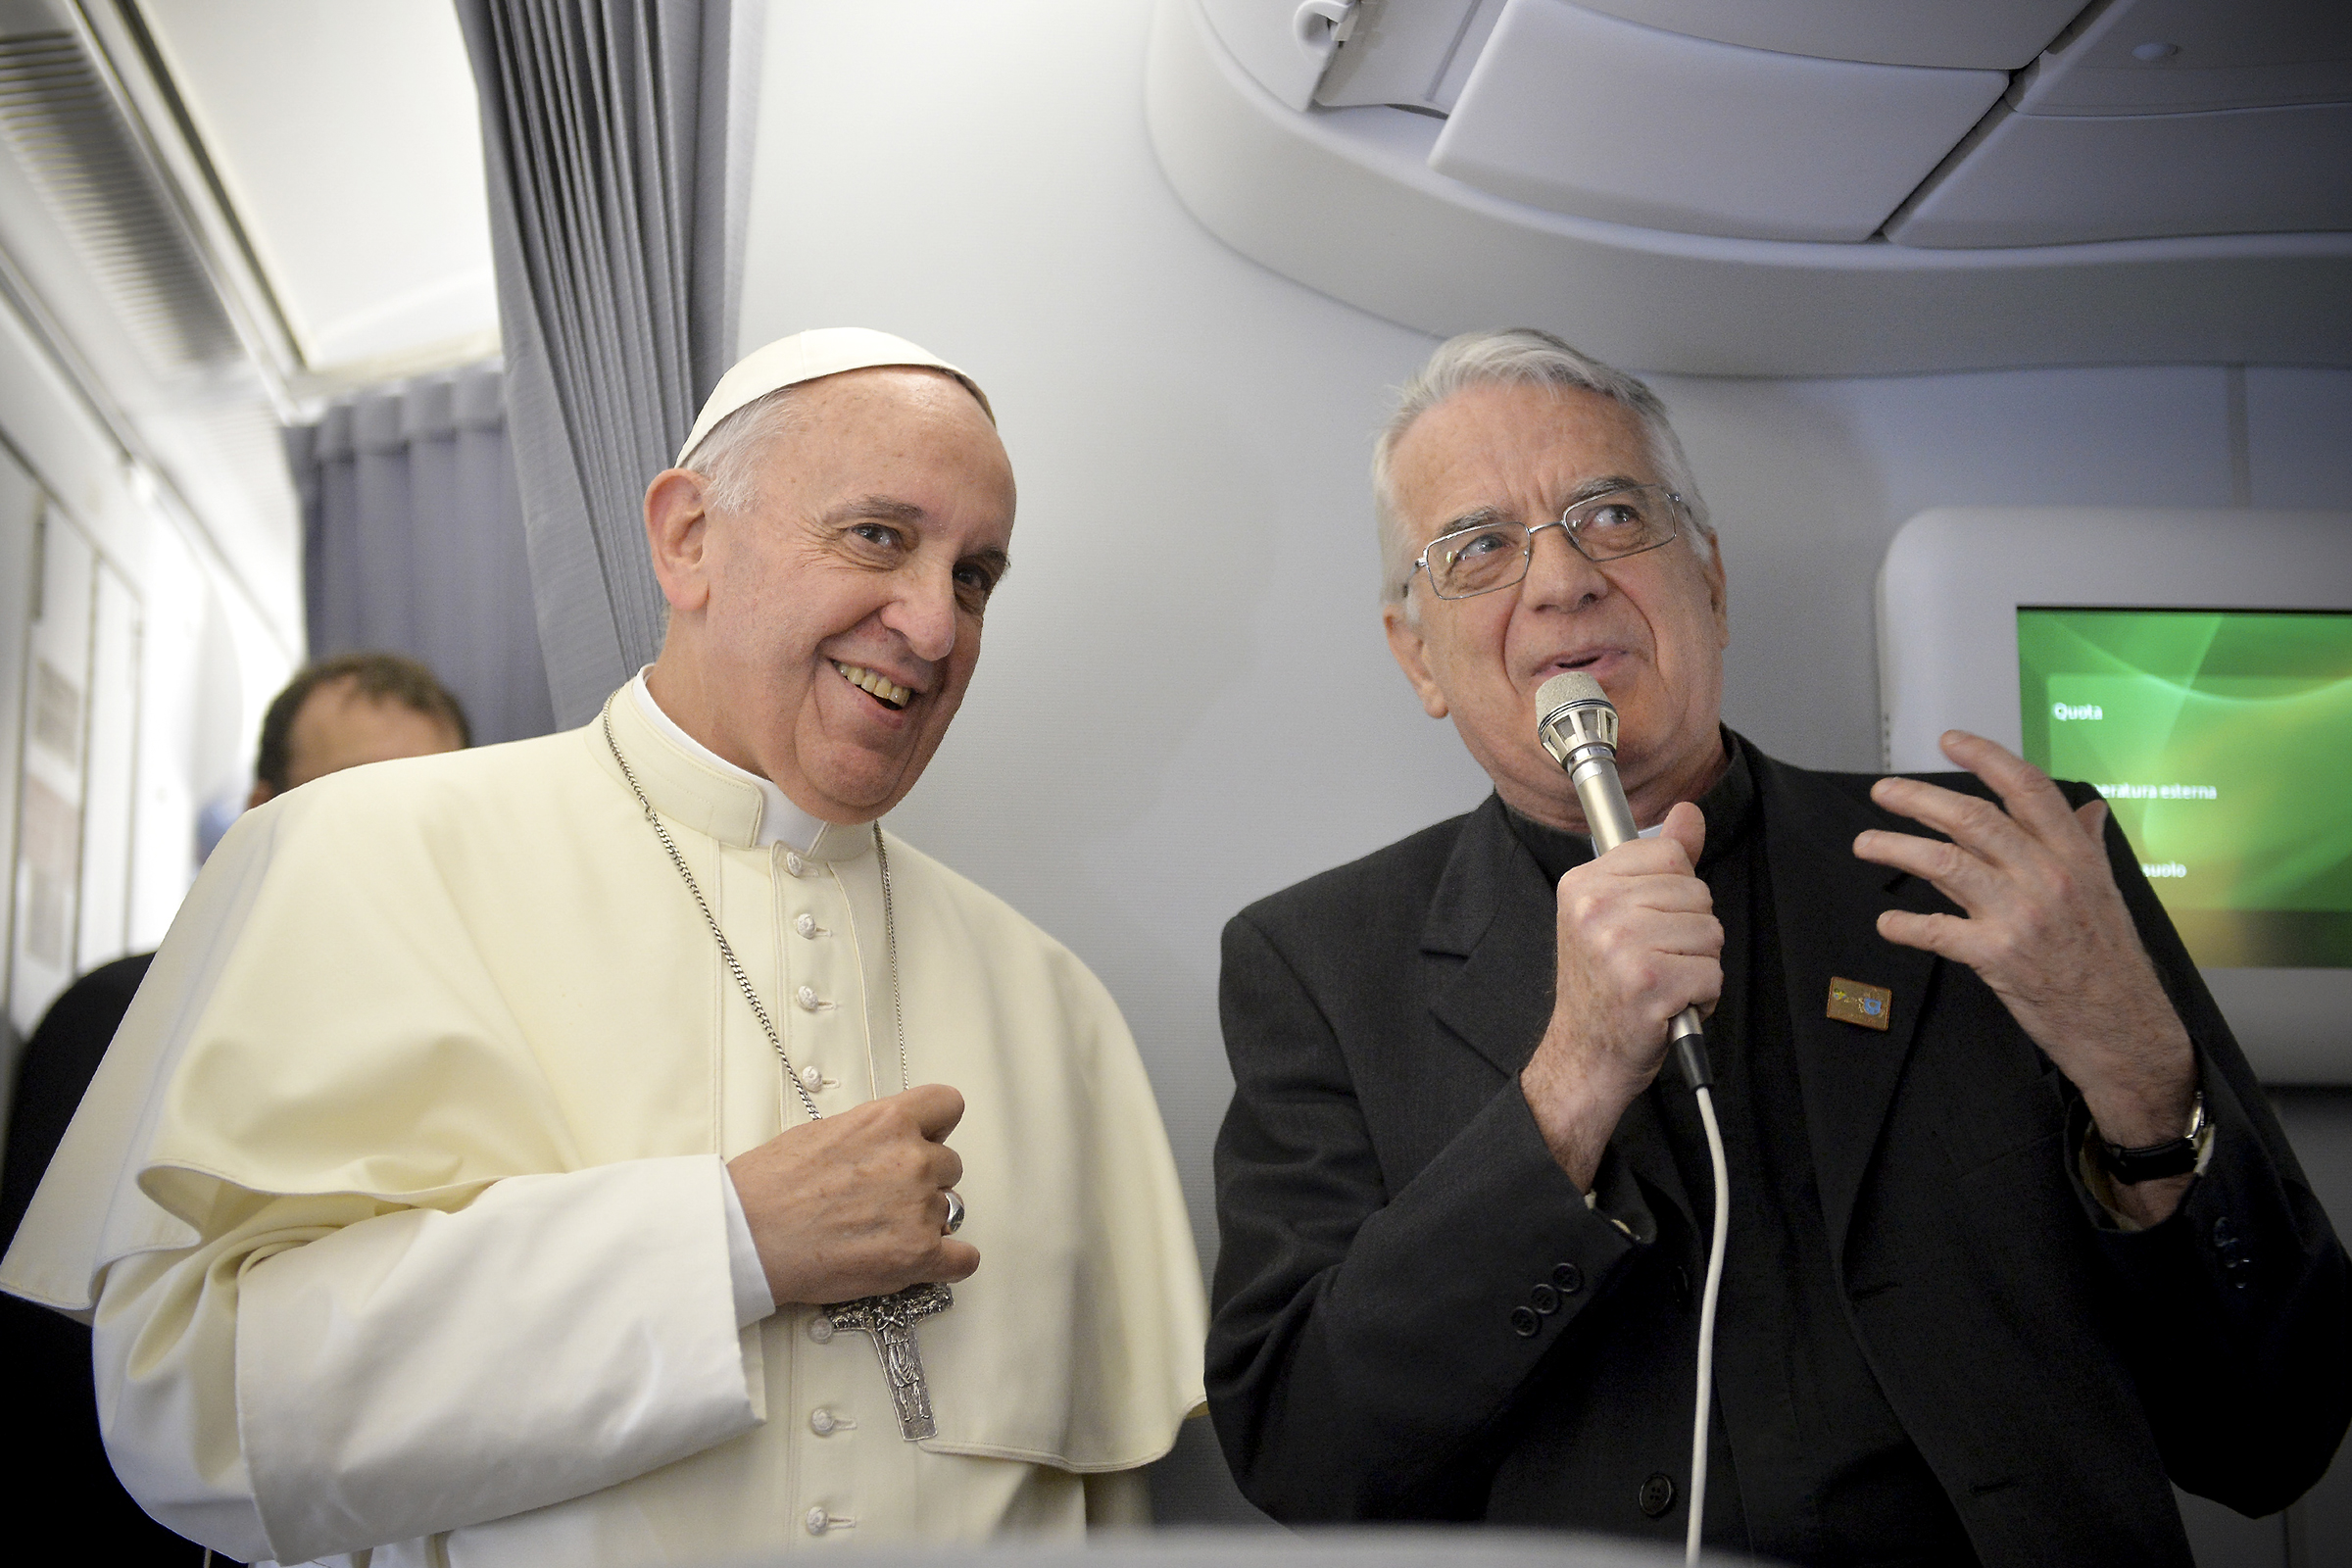 Pope Francis (L) and father Federico Lombardi greet journalists of the papal flight upon arrival in Rio de Janeiro on July 22, 2013. Pope Francis landed in Brazil on Monday for his first overseas trip as pontiff to attend the international festival World Youth Day in Brazil, the world's biggest Catholic country.    AFP PHOTO/LUCA ZENNARO/POOL / AFP PHOTO / POOL / LUCA ZENNARO